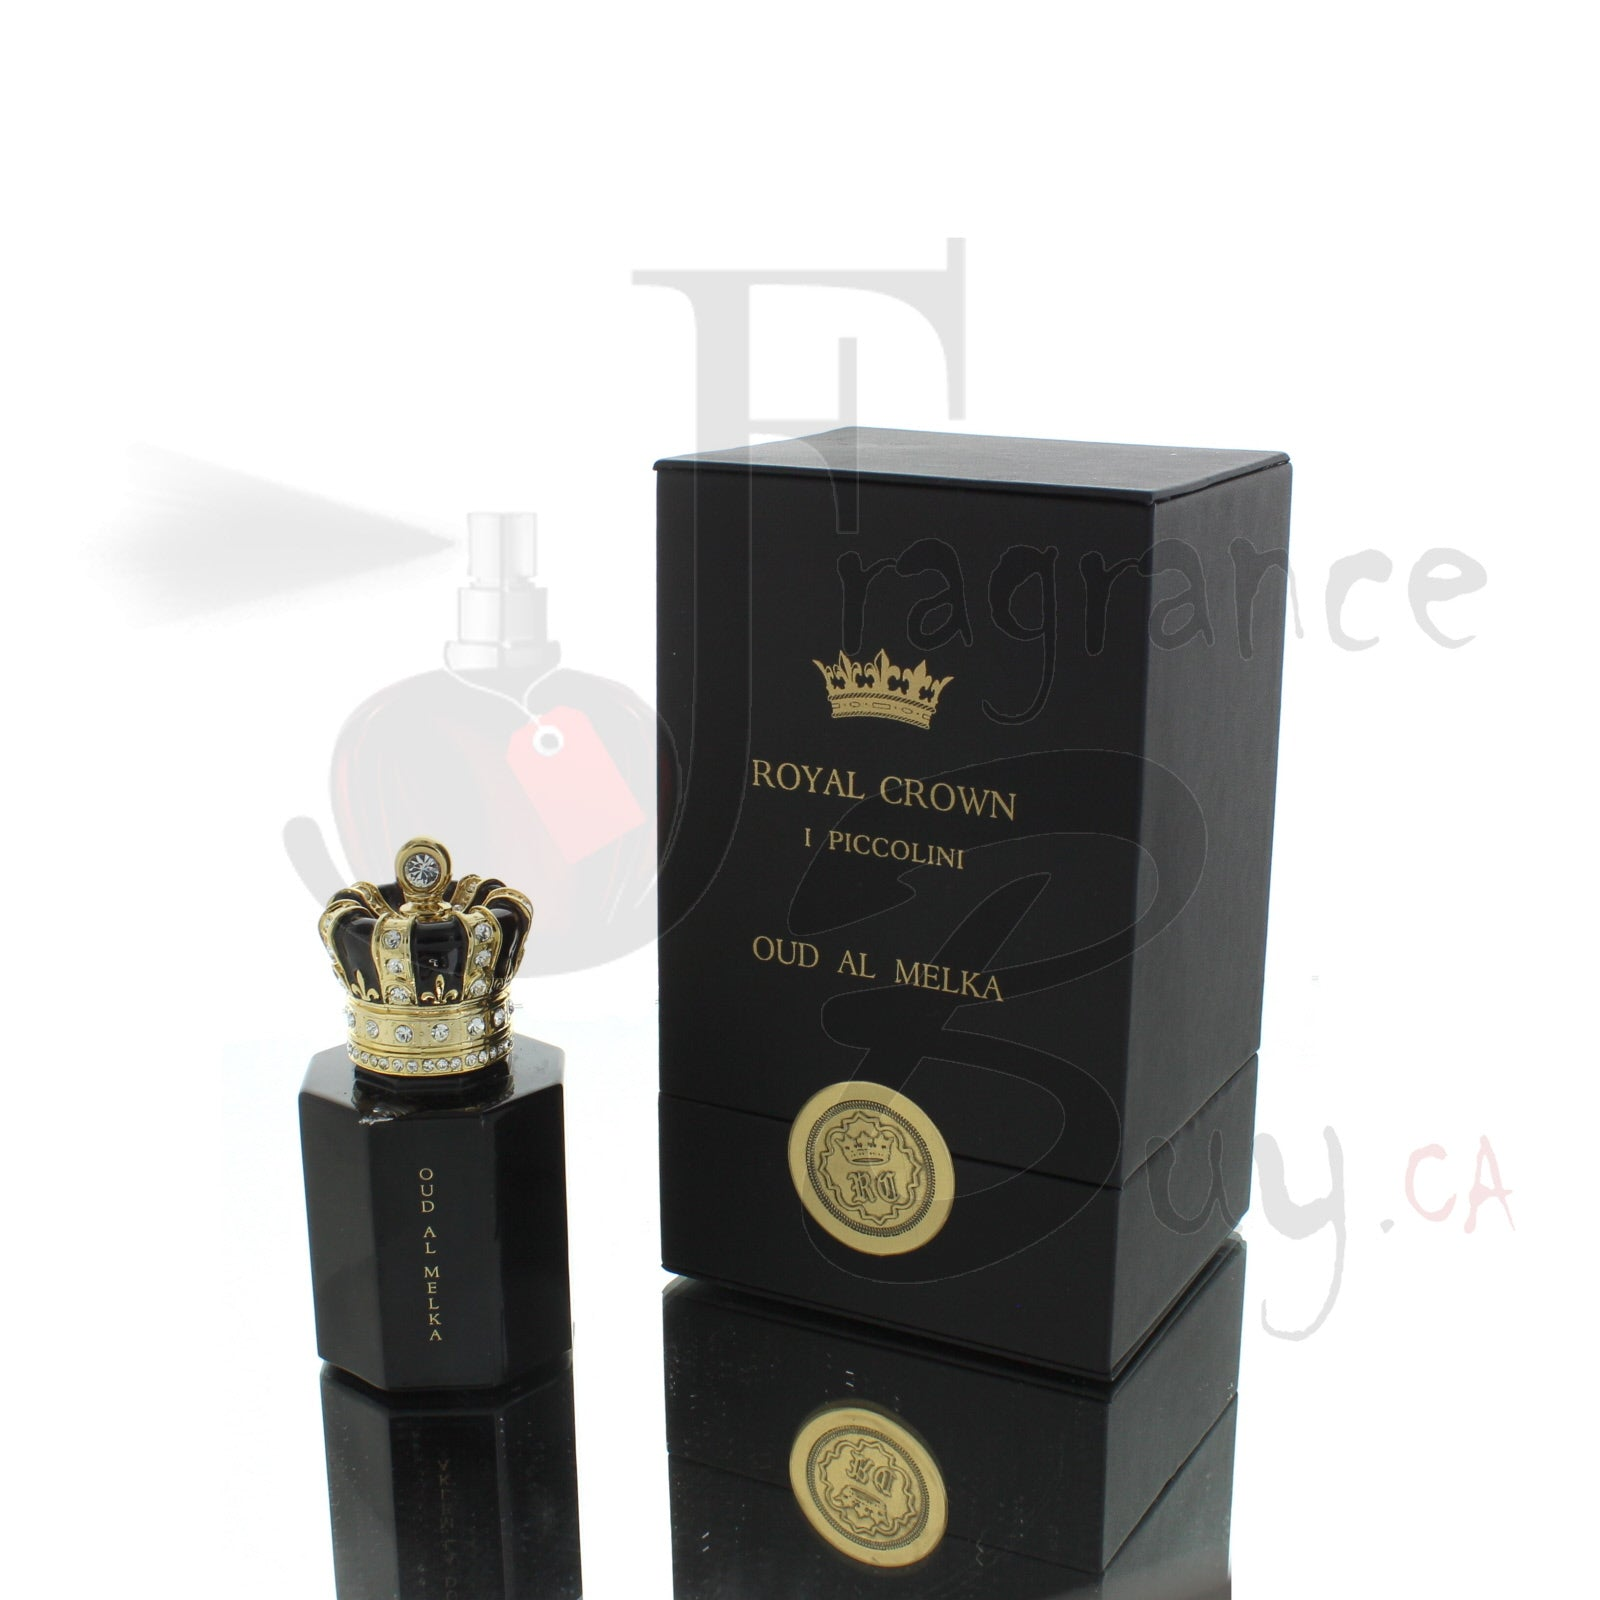 Royal Crown Oud Al Melka For Man/Woman